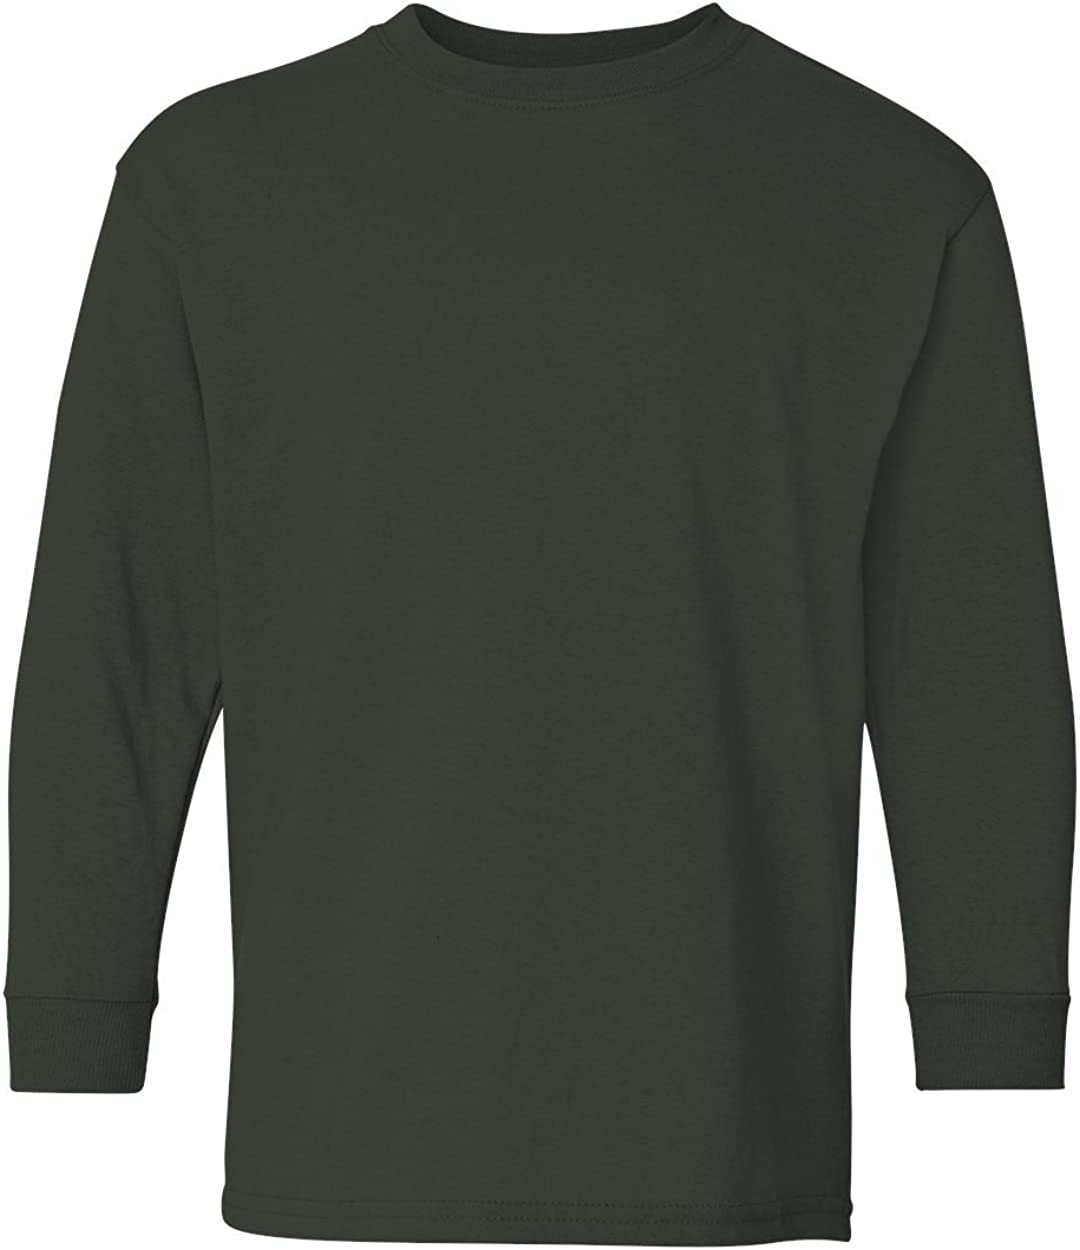 Heavy Cotton Long-Sleeve T-Shirt (G540B) Forest Green, M (Pack of 12)